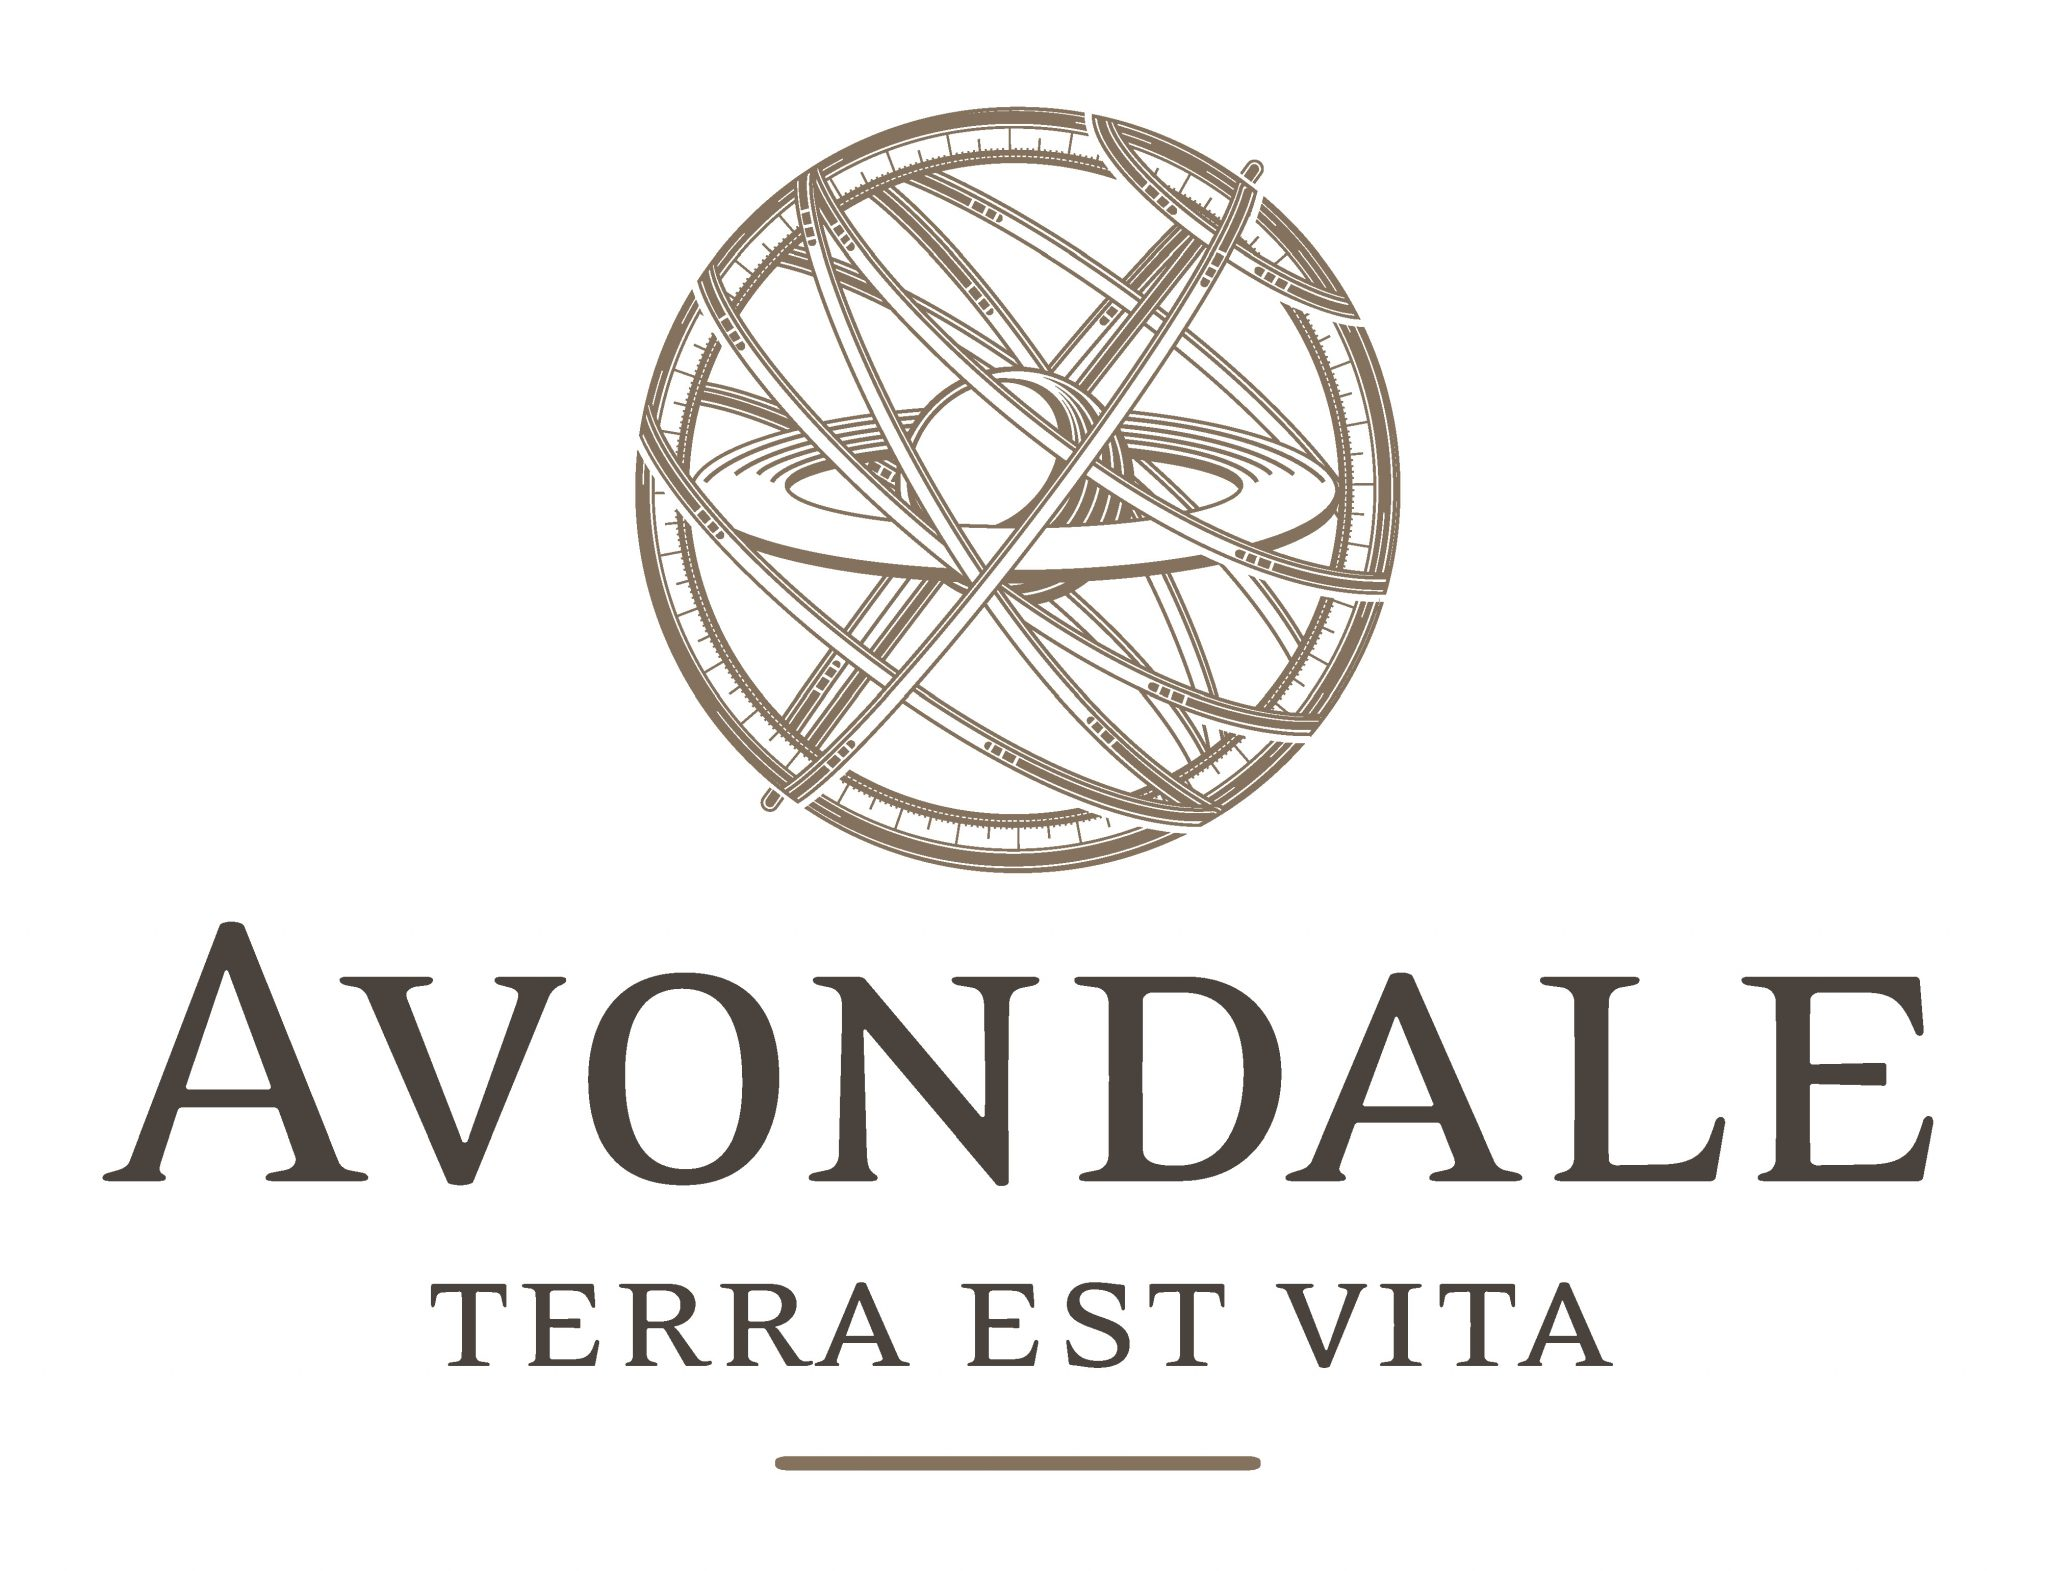 Terra est Vita - the motto of Avondale Farm. Earth is Life!  Sonia Cabano blog eatdrinkcapetown